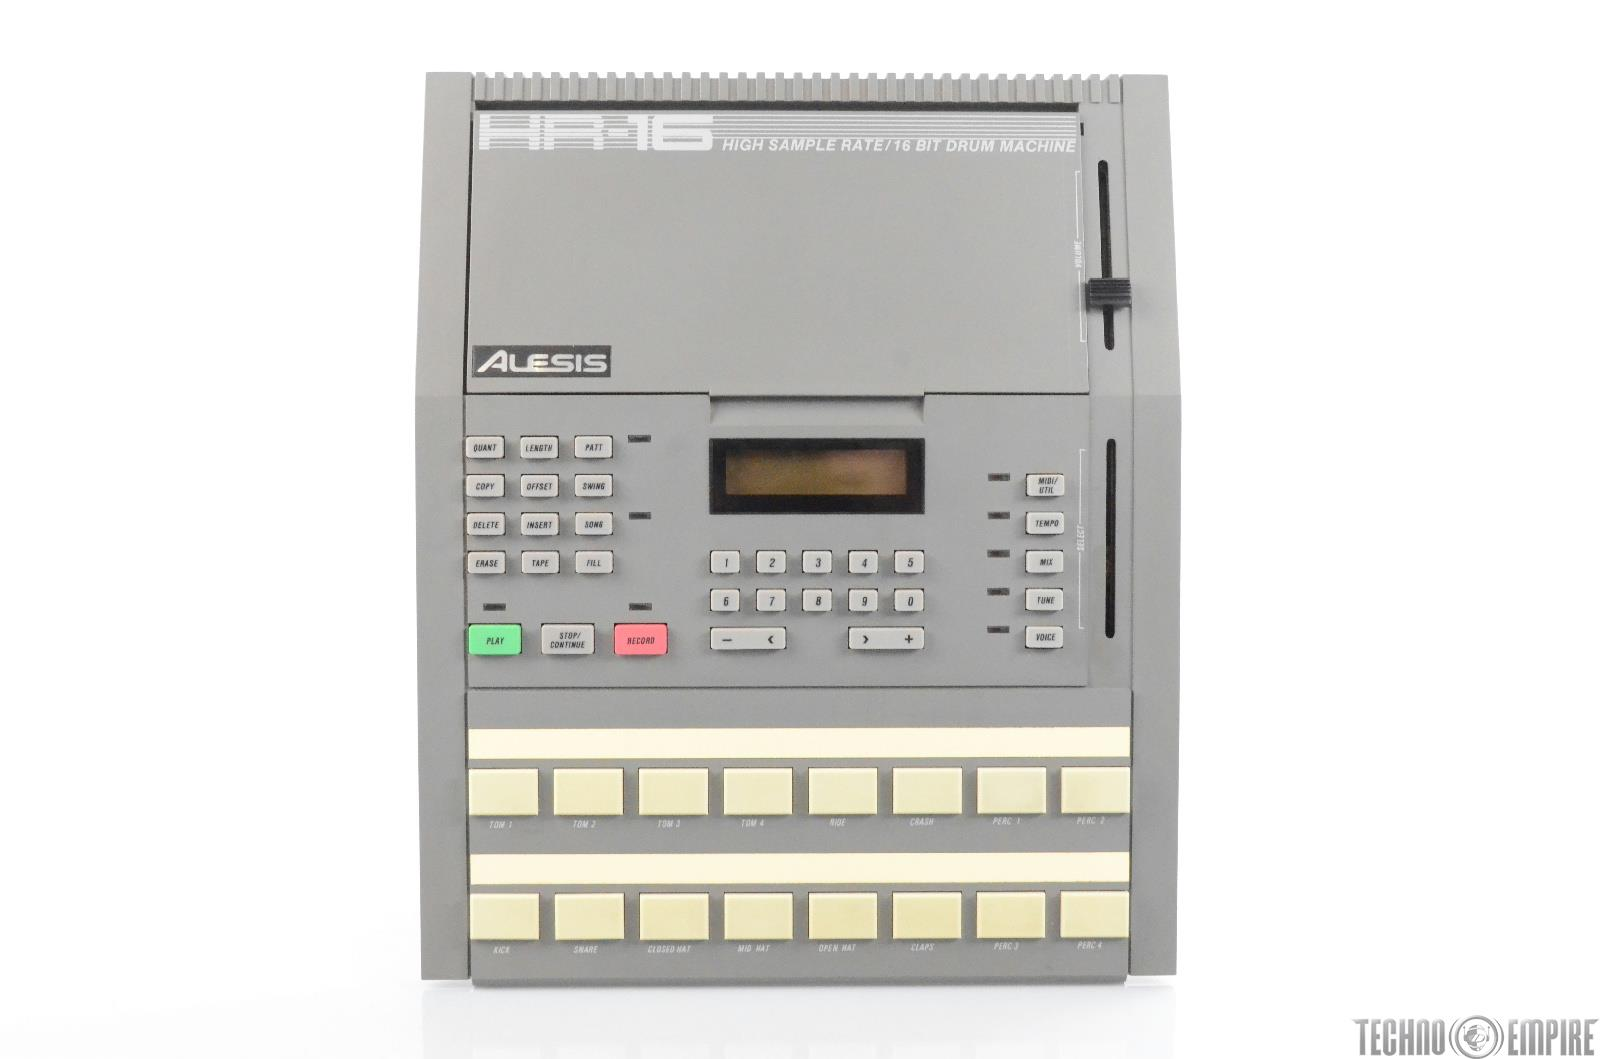 Alesis HR-16 High Sample Rate 16 Bit Drum Machine w/ Guide & PSU HR16 #29942